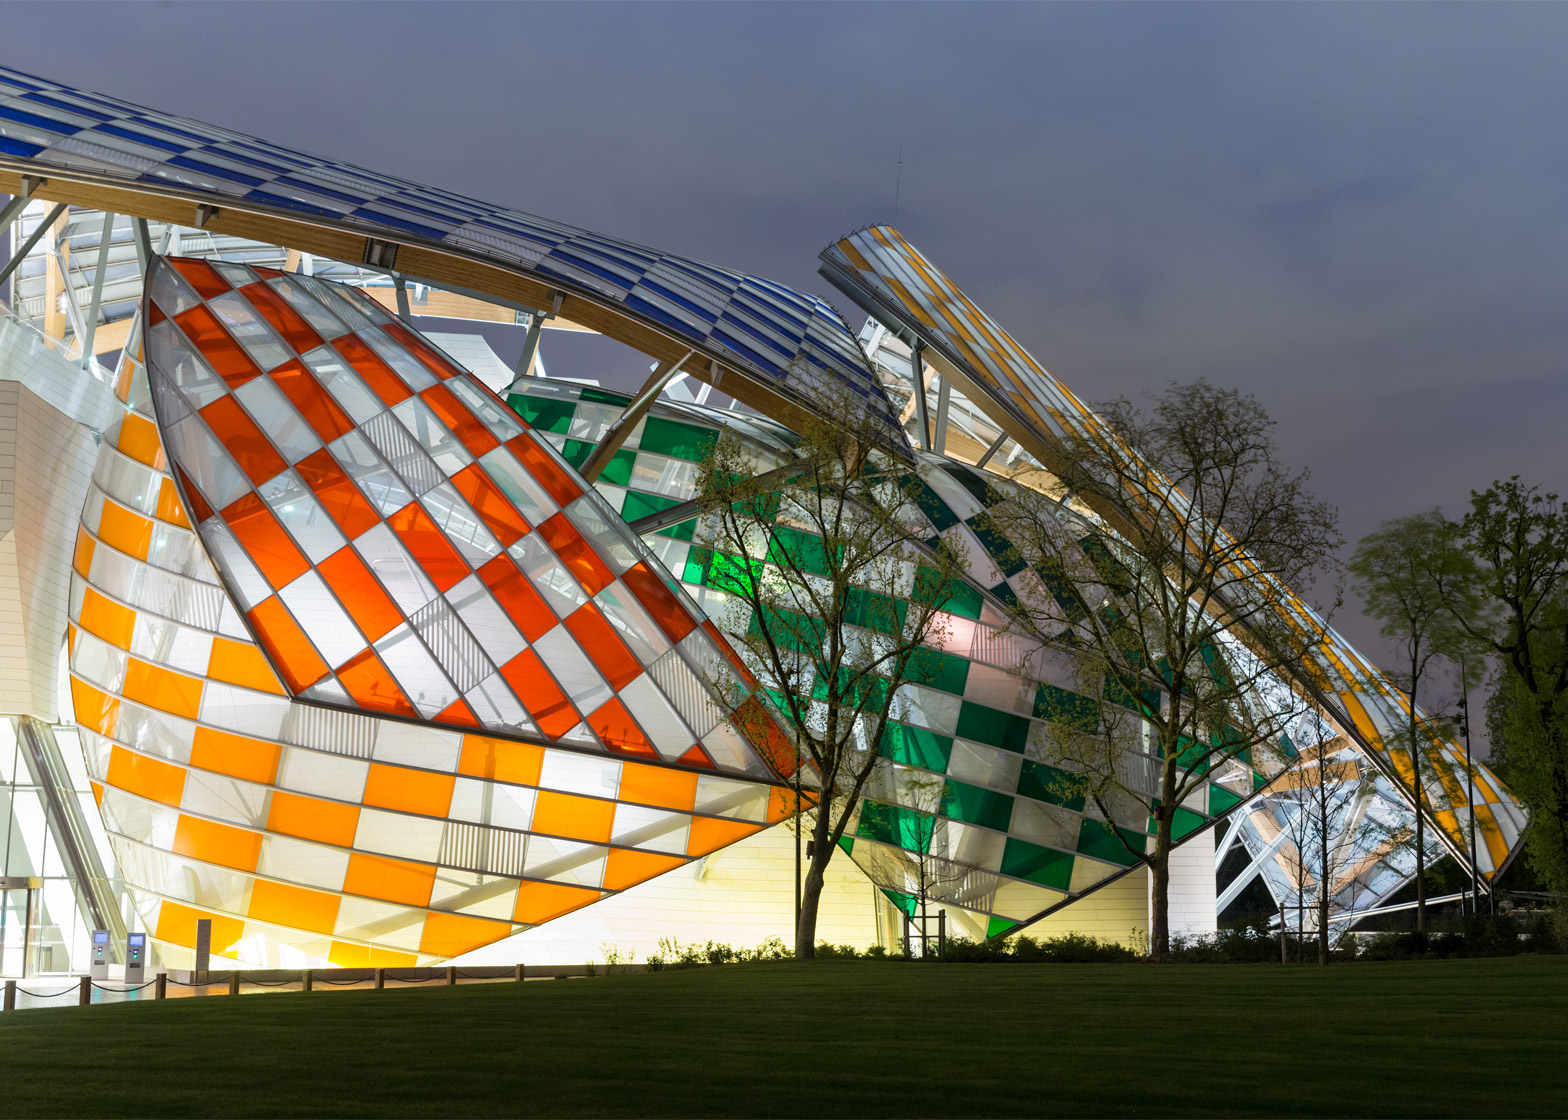 observatory-of-light-fondation-louis-vuitton-multicoloured-installation-daniel-buren-frank-gehry-paris-france-glass_dezeen_1568_5